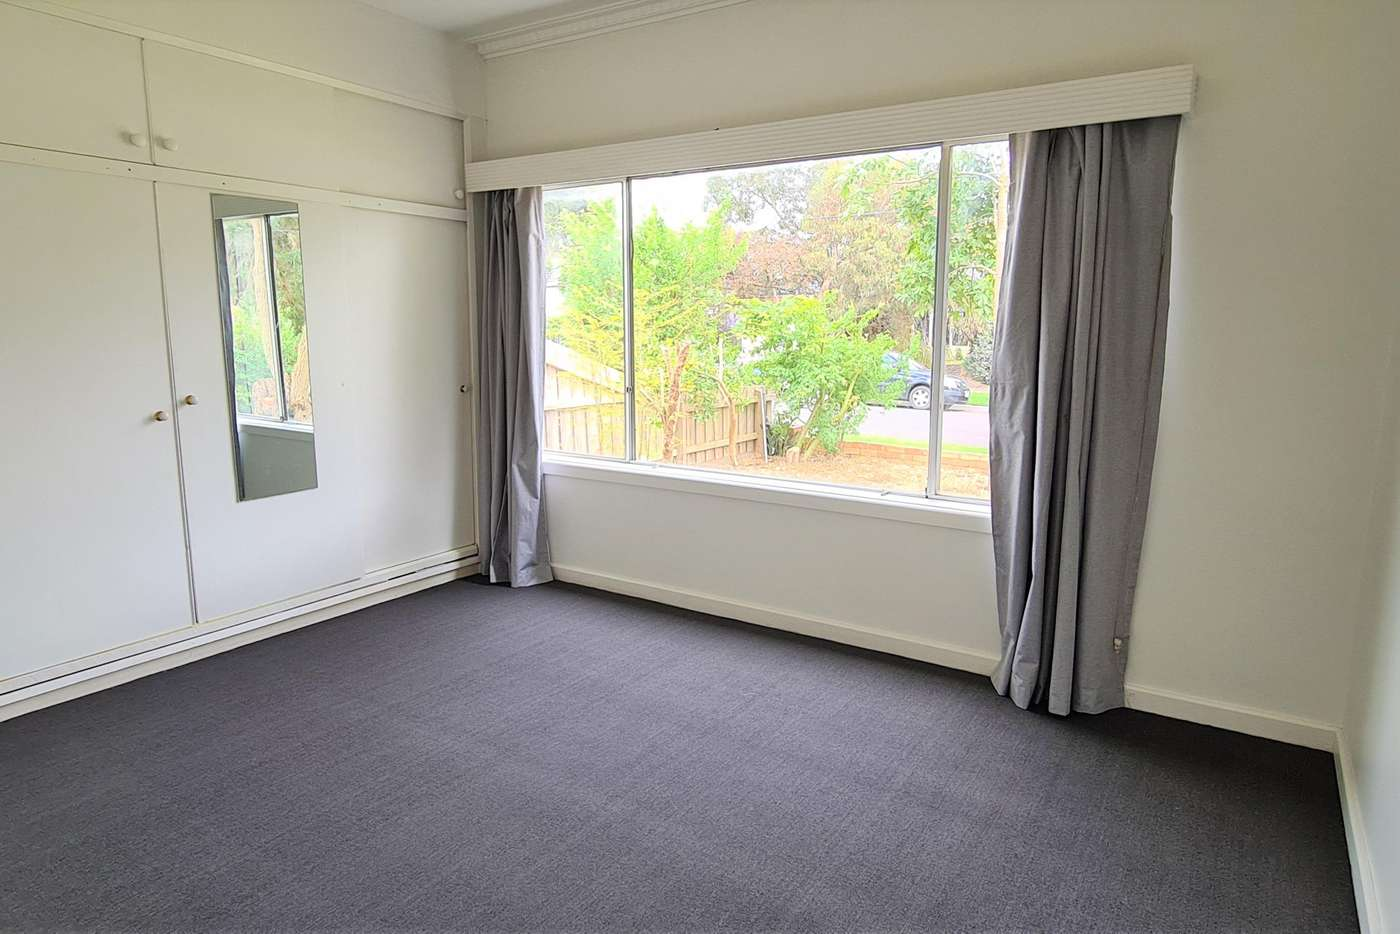 Fifth view of Homely house listing, 28 Mimosa Avenue, Oakleigh South VIC 3167